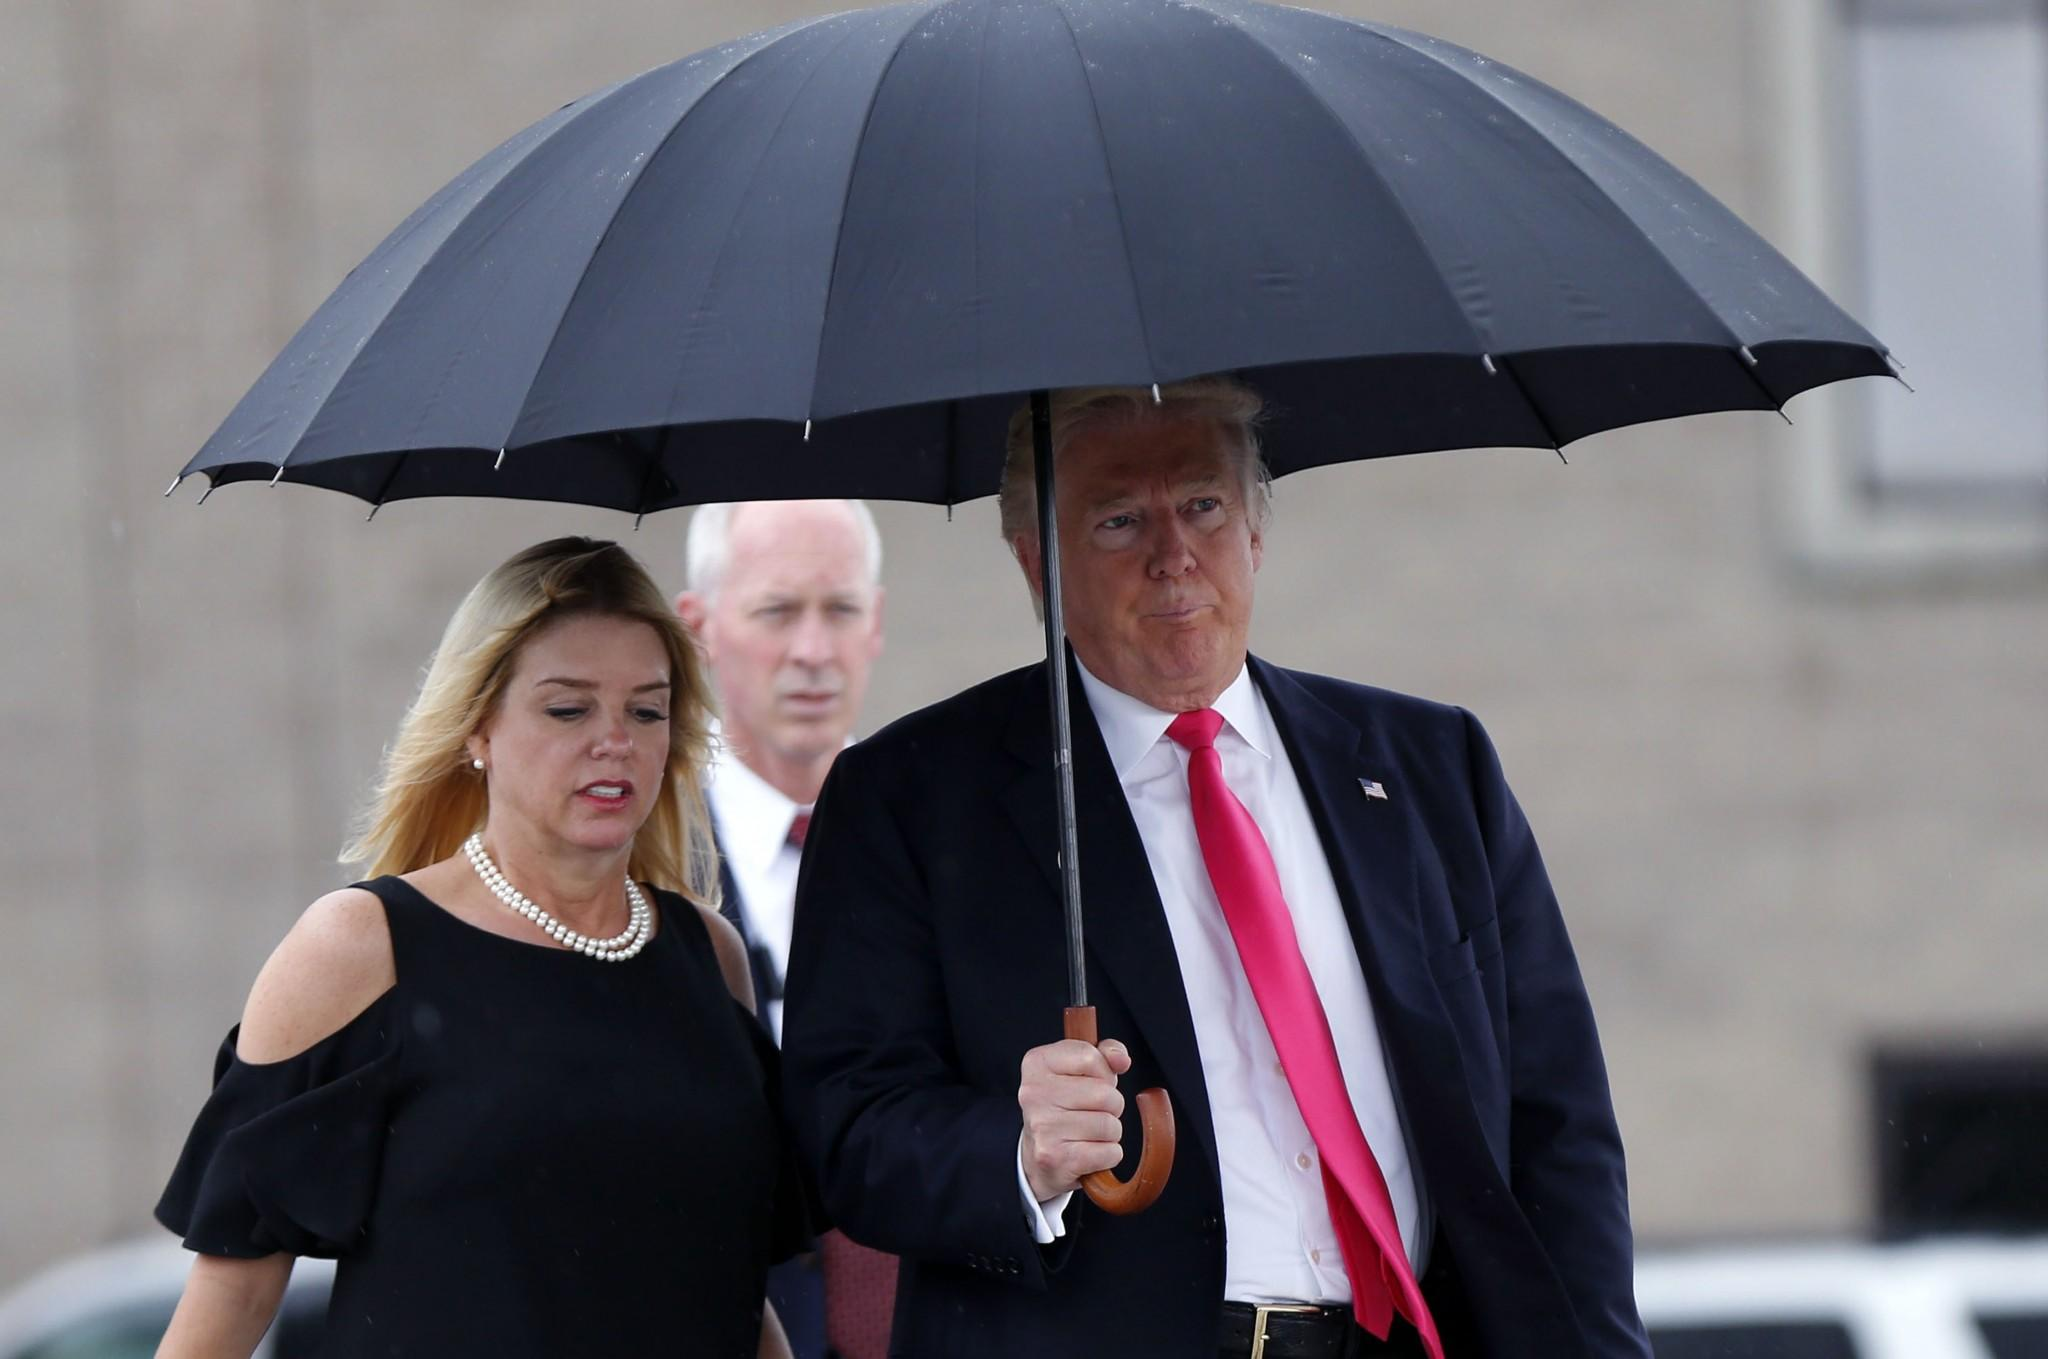 Republican presidential candidate Donald Trump walks in the rain with Florida Attorney General Pam Bondi, as they arrive at a campaign rally in Tampa, Fla., on Aug. 24, 2016. (Photo: Gerald Herbert/AP)